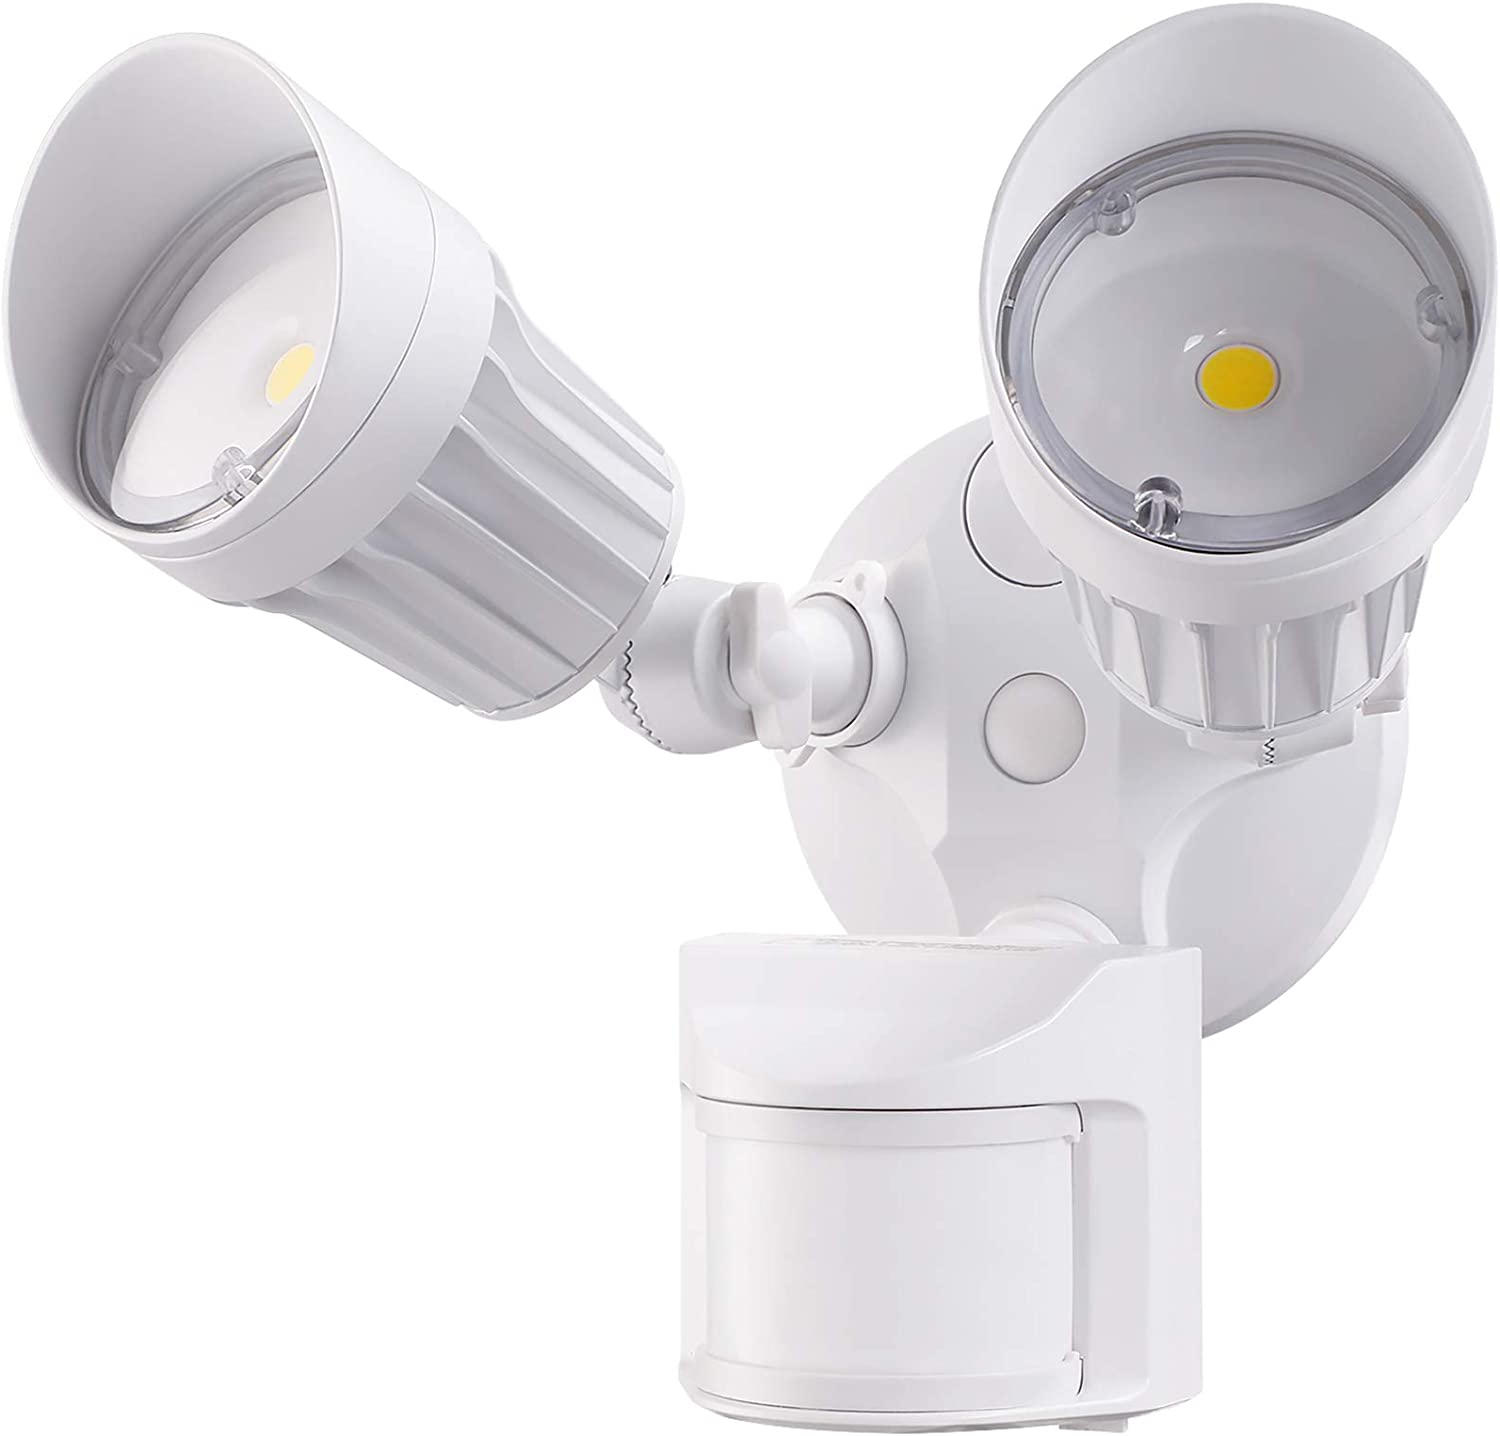 LEONLITE LED Security Lights